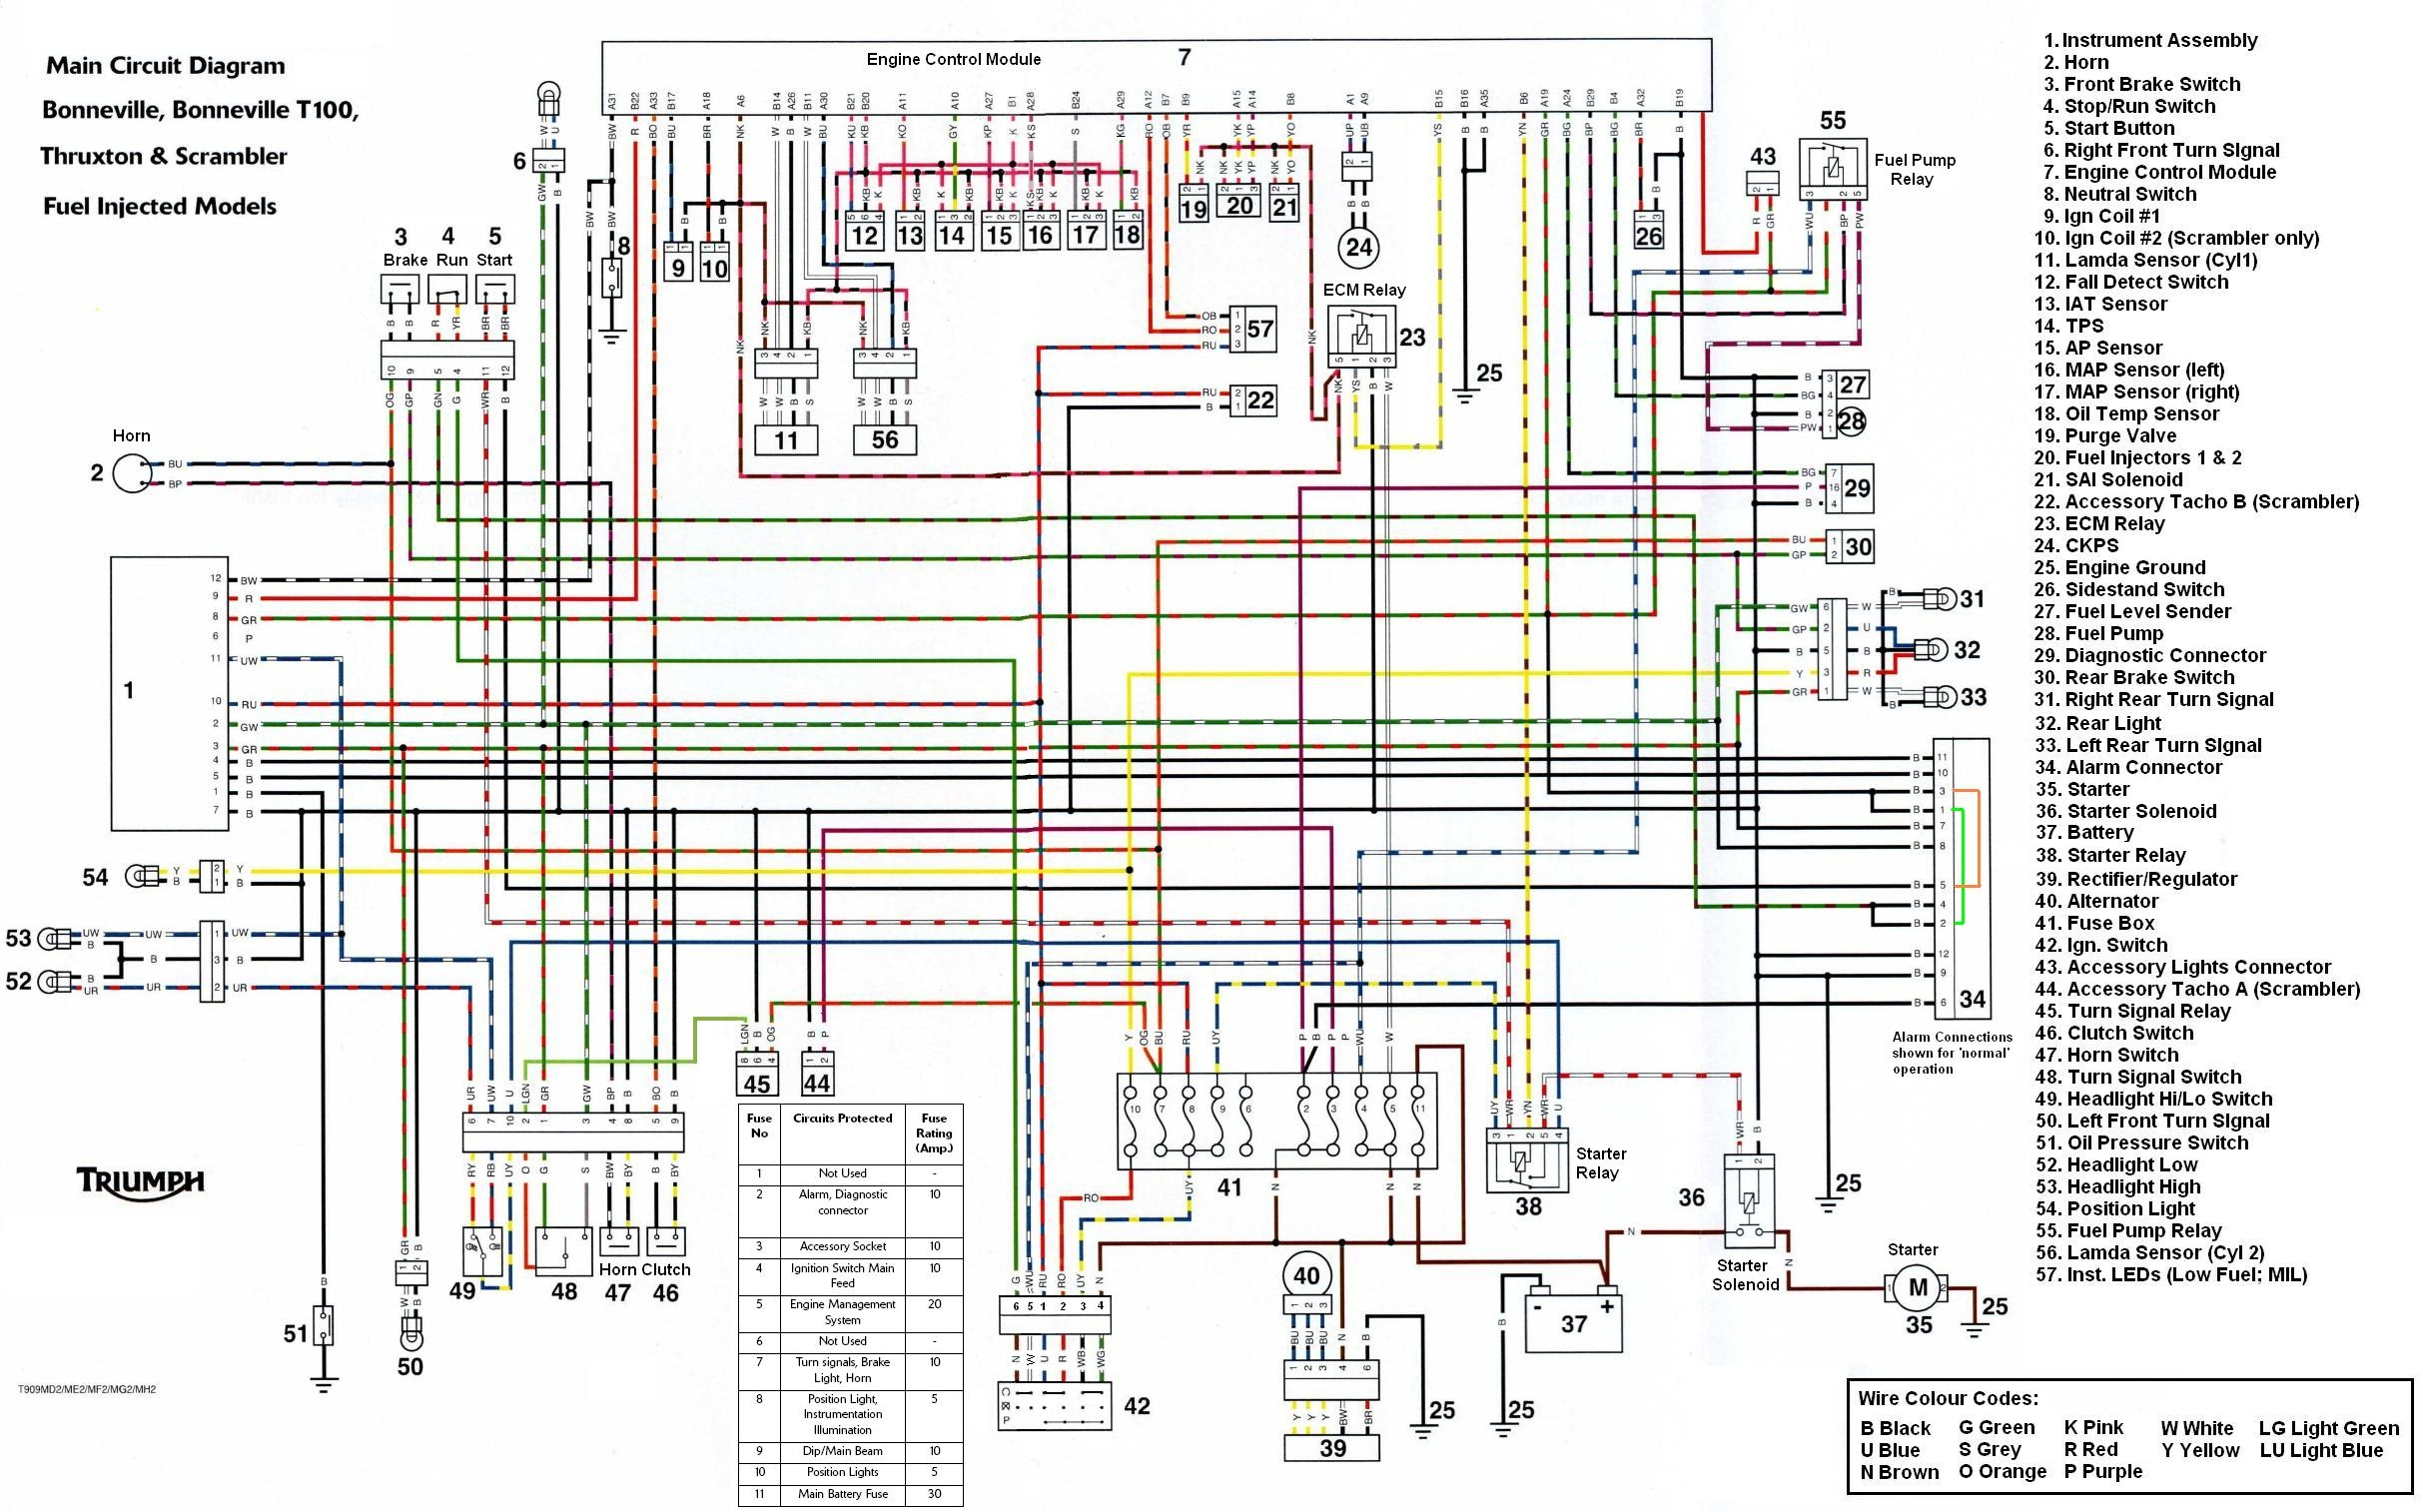 Triumph Bonneville T100 Thruxton Scrambler Wiring Diagram xr650r wiring diagram xr600r wiring diagram \u2022 wiring diagrams j  at gsmx.co